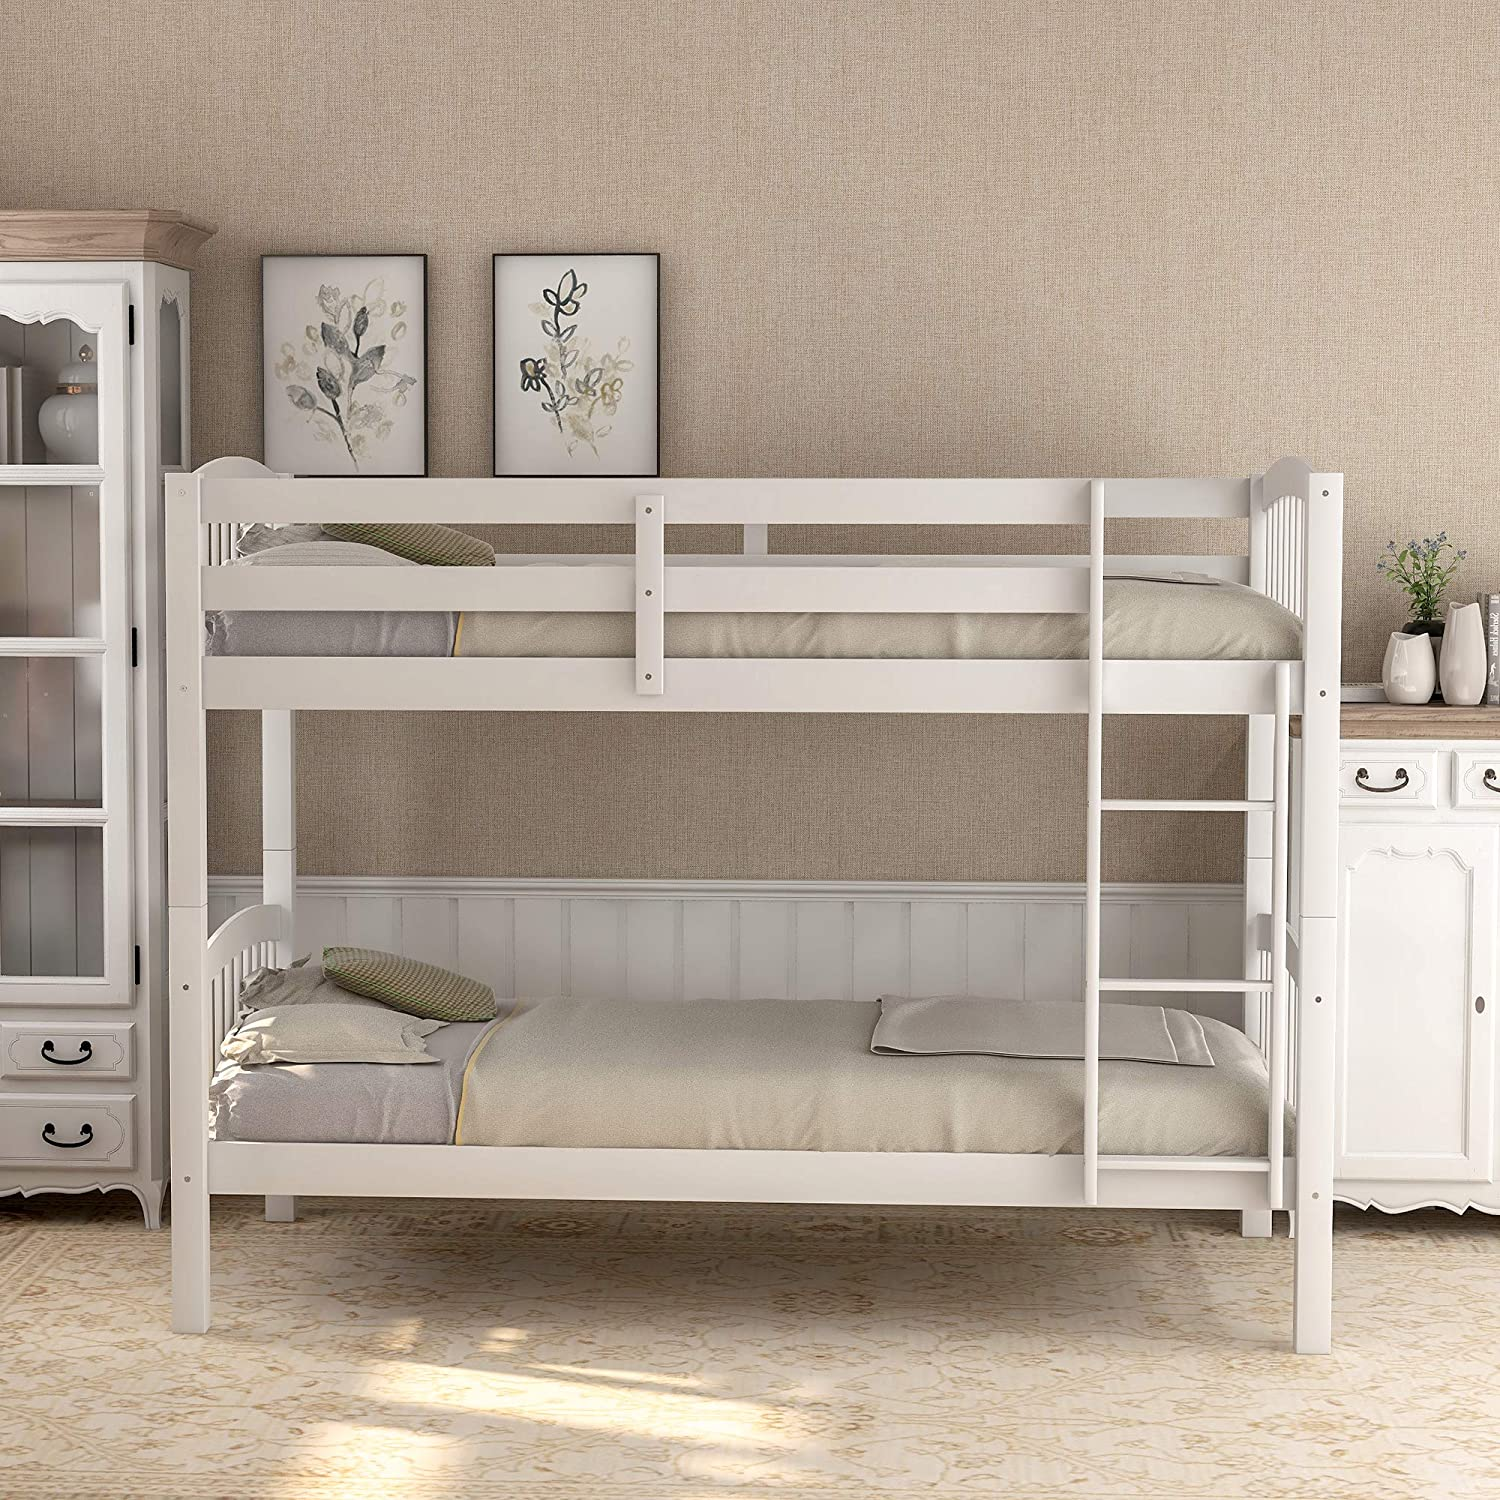 Twin Bunk Bed, Solid Wood Twin Over Twin Bunk Bed Frame with Ladder for Kids, Teens (White)